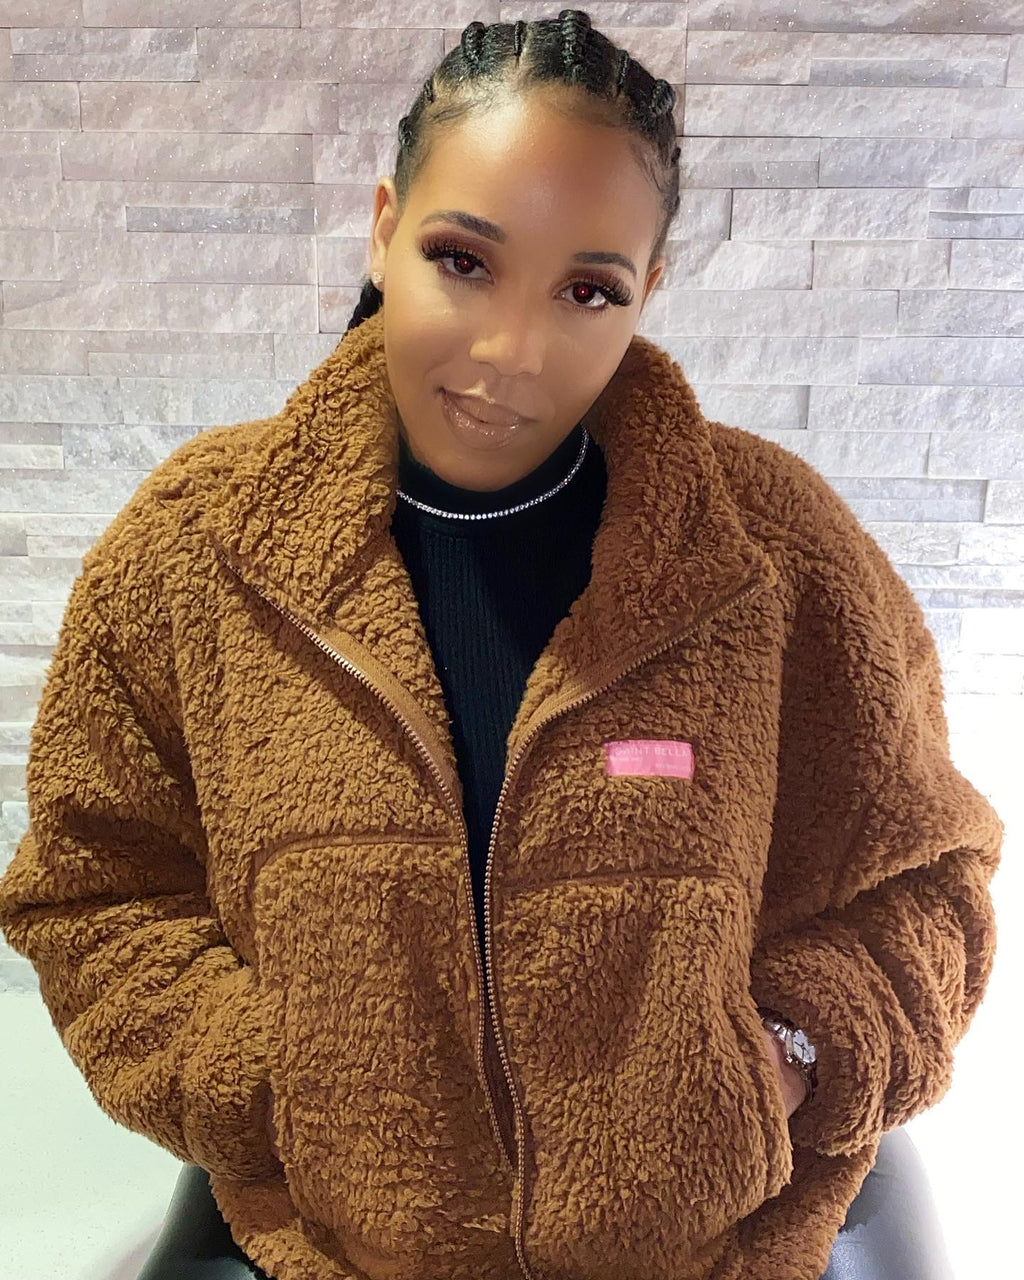 Caramel Apple Cider Teddy Jacket